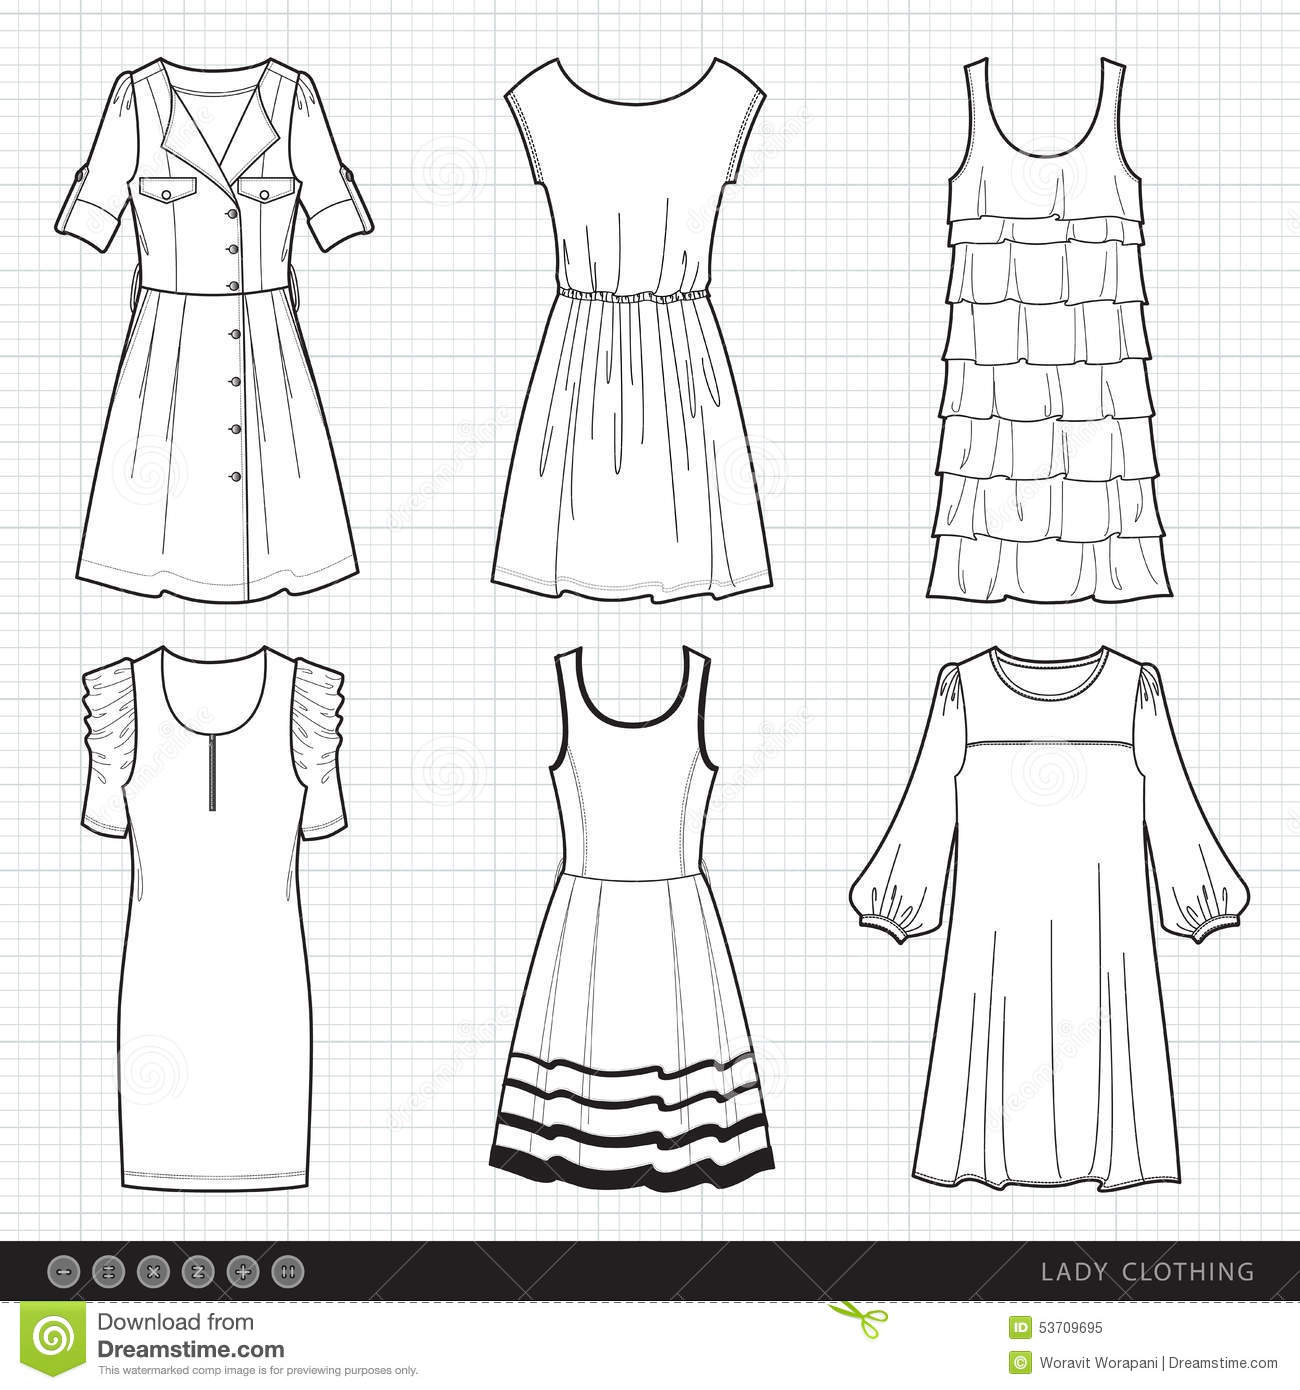 Lady fashionable clothes